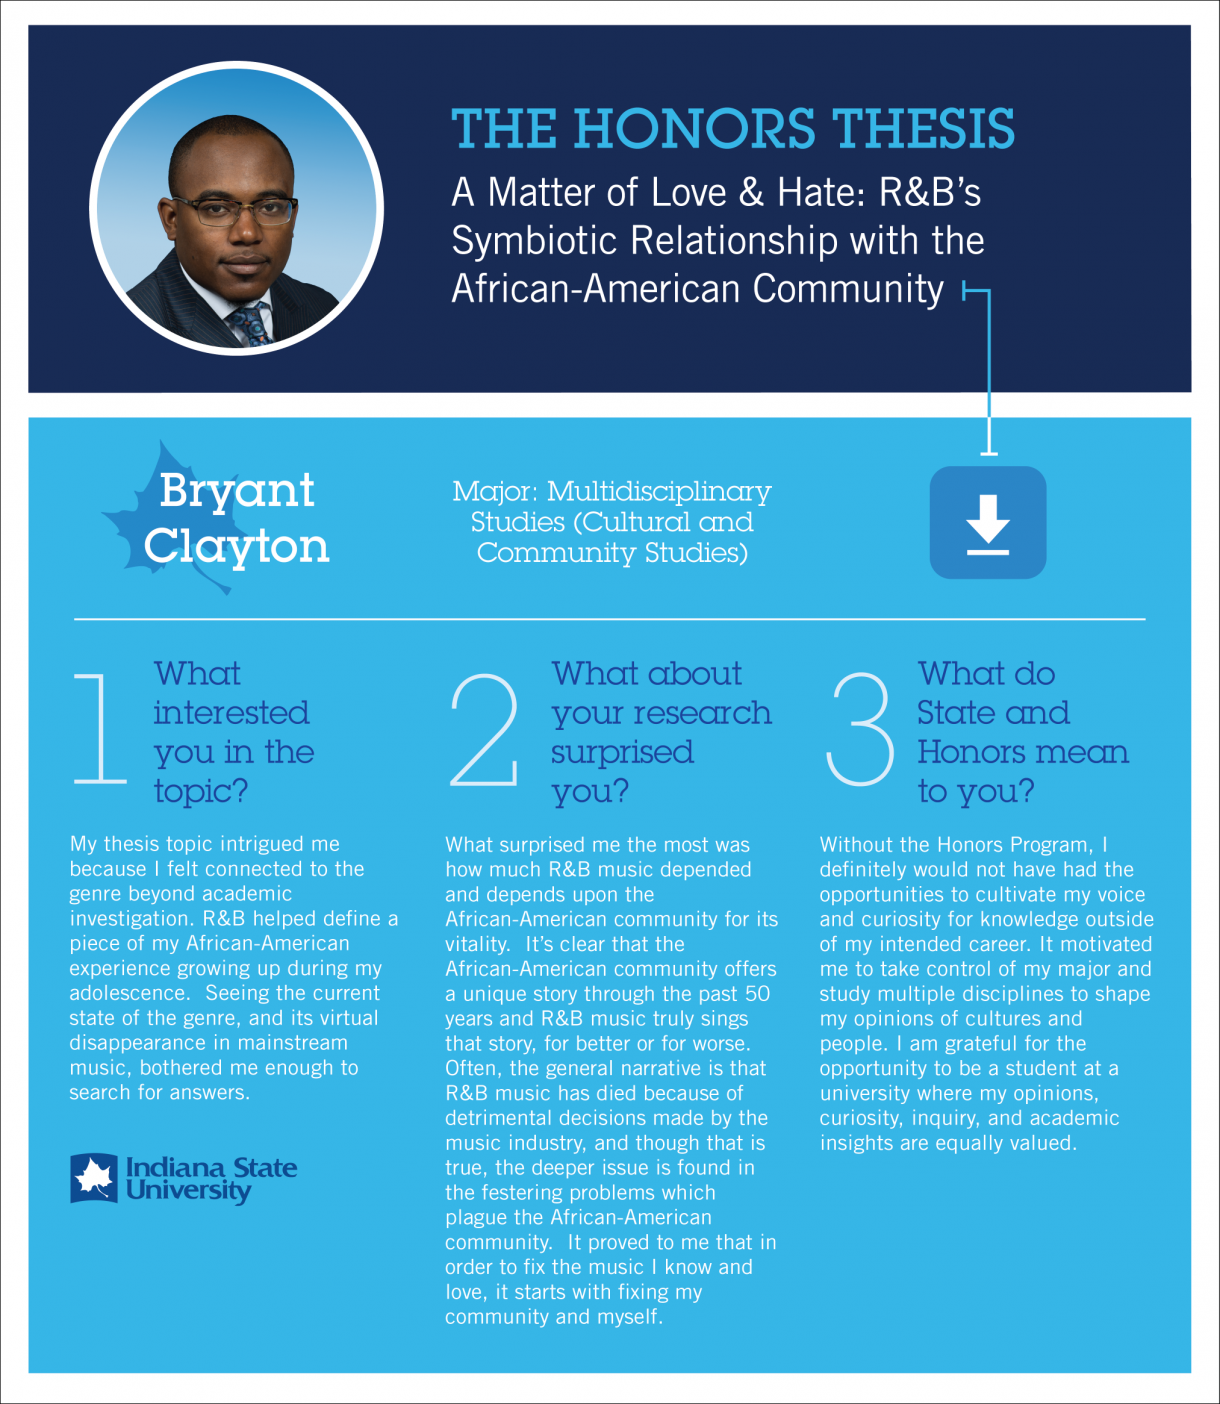 Honors Thesis: Bryant Clayton